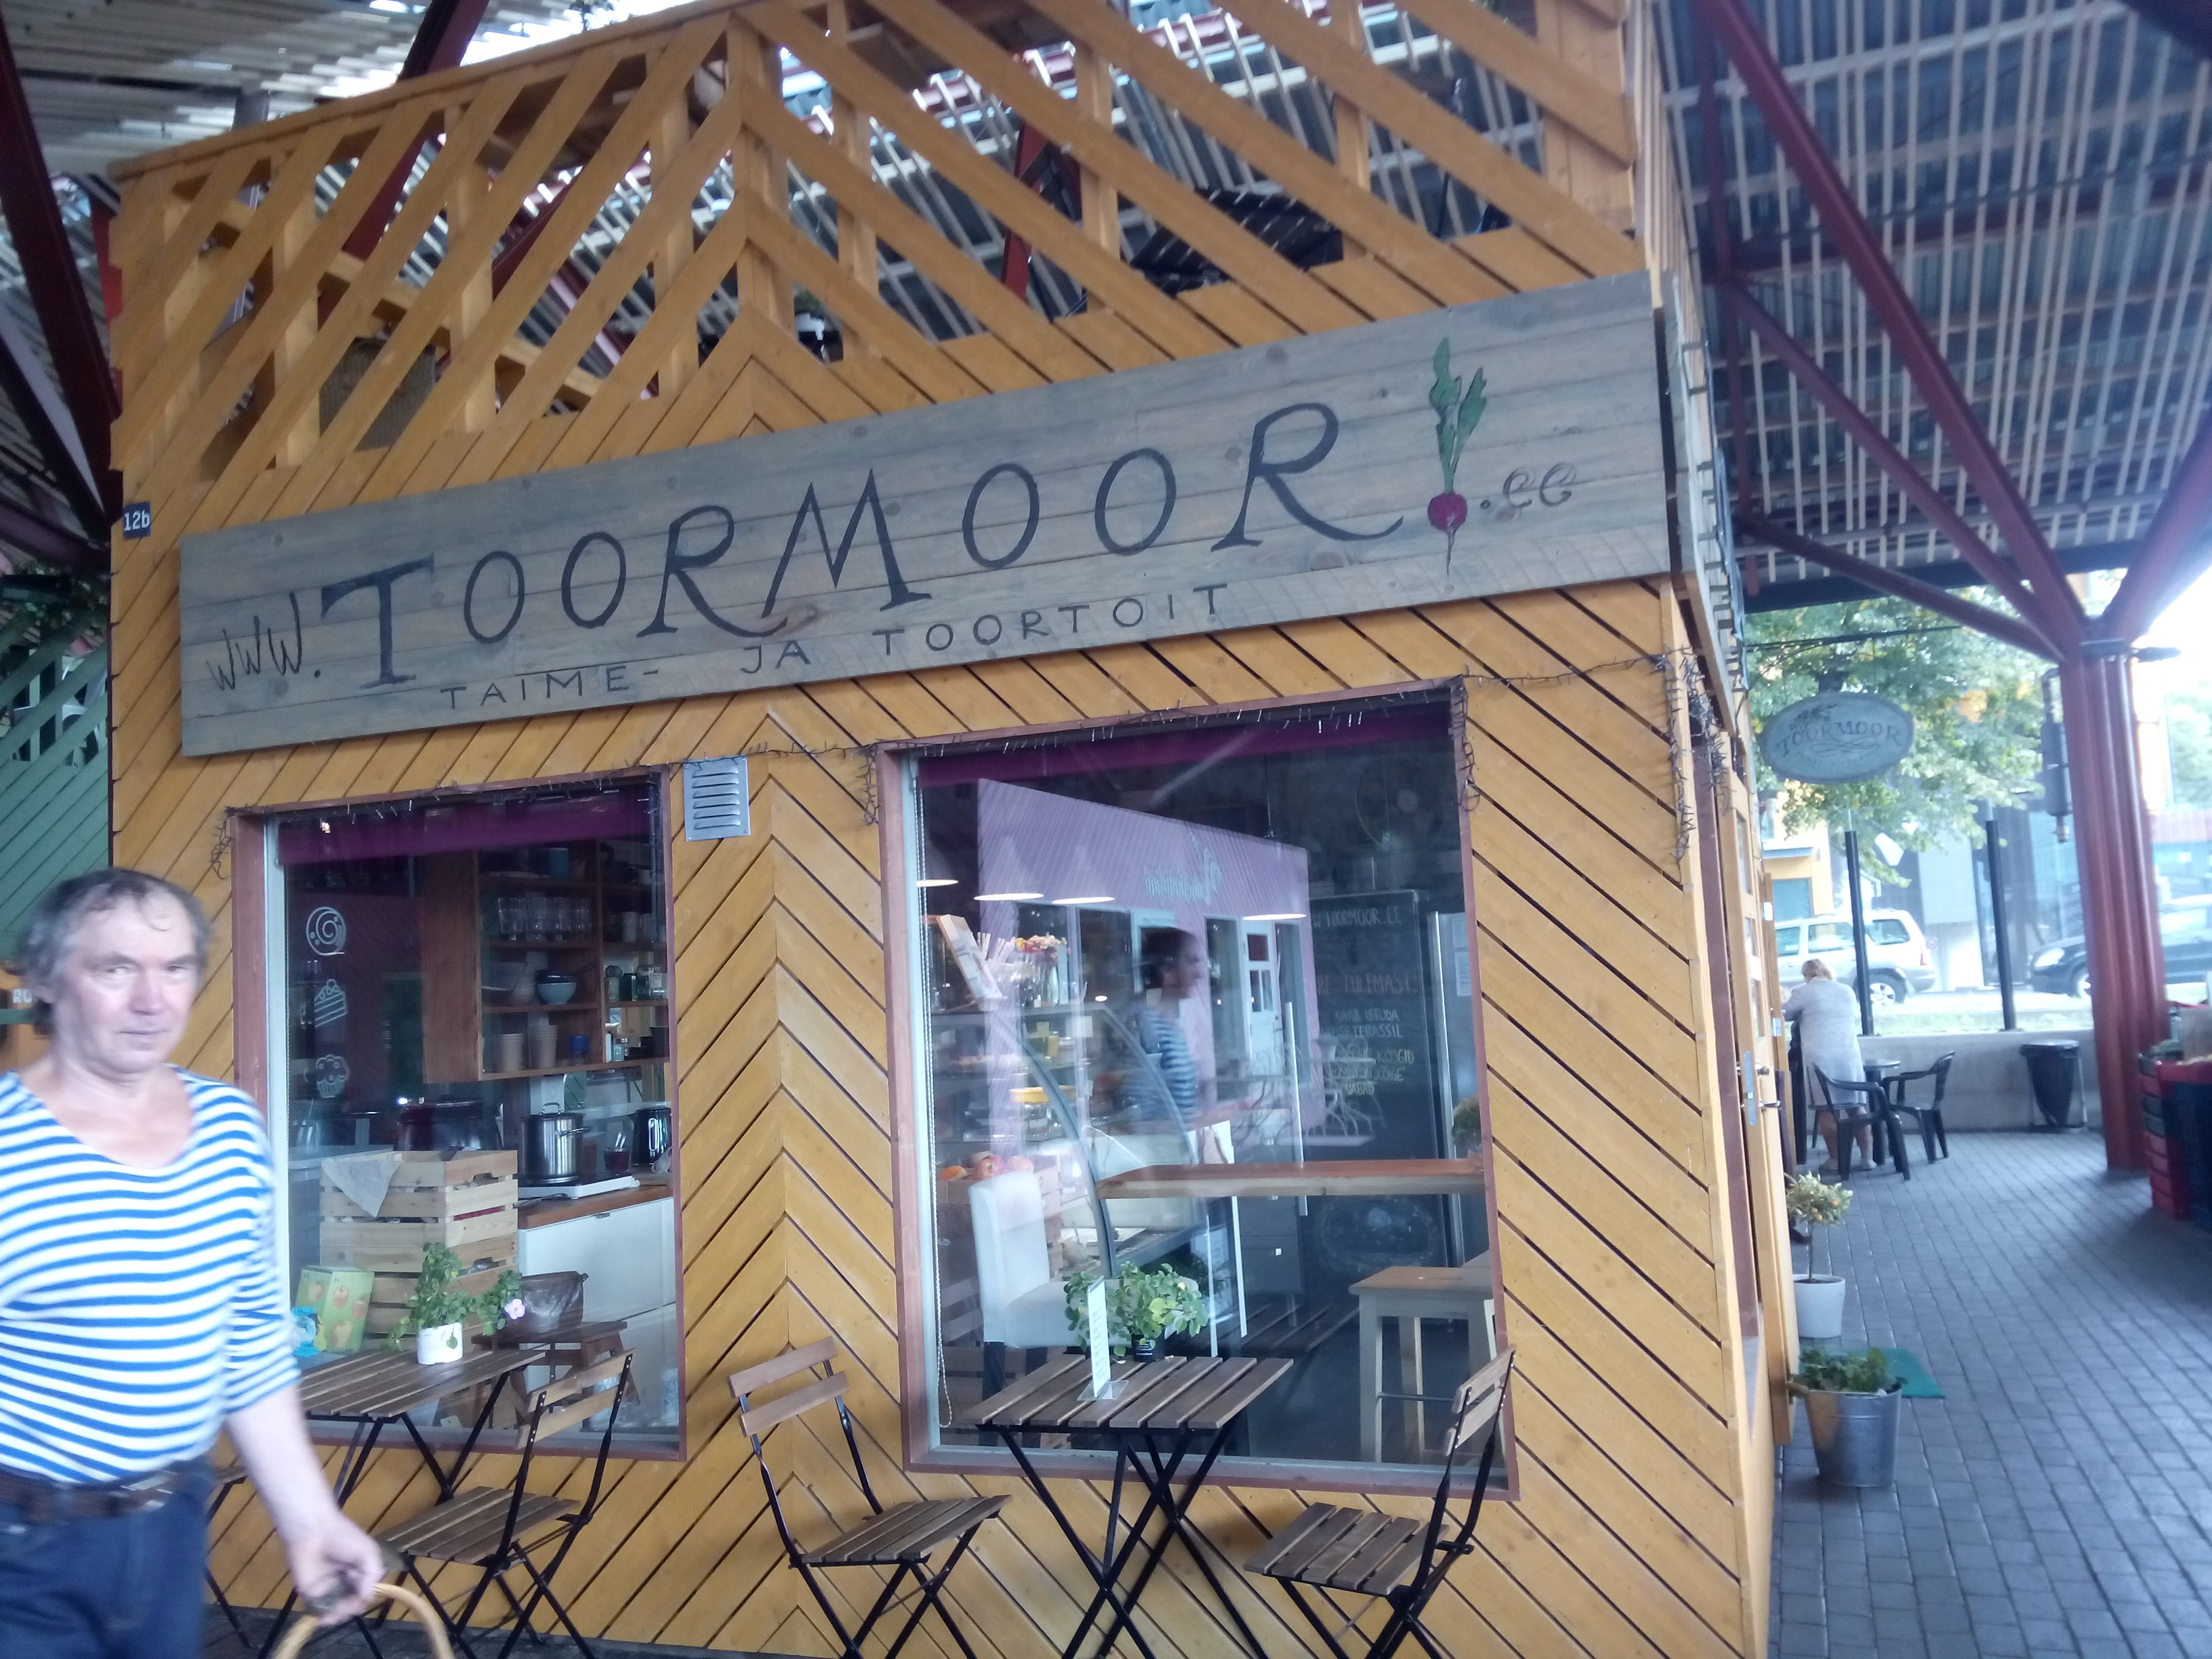 A yellow wooden panelled hut with a handpainted 'Toormoor' sign, large windows and some seats outside